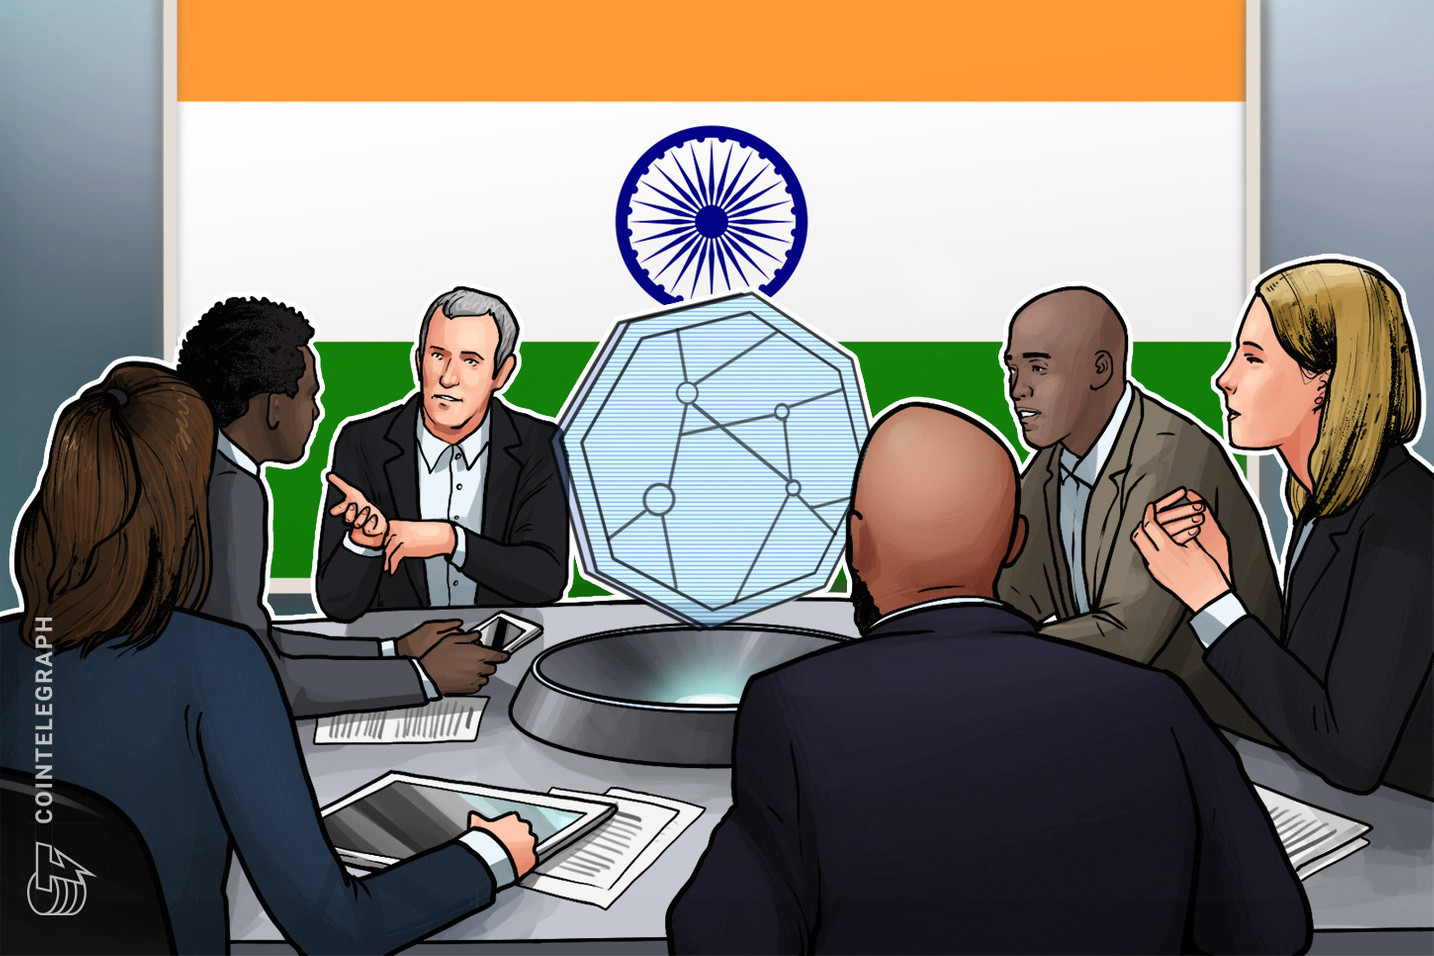 Reserve Bank of India Confirms It Is Looking Into Making a Central Bank Digital Currency